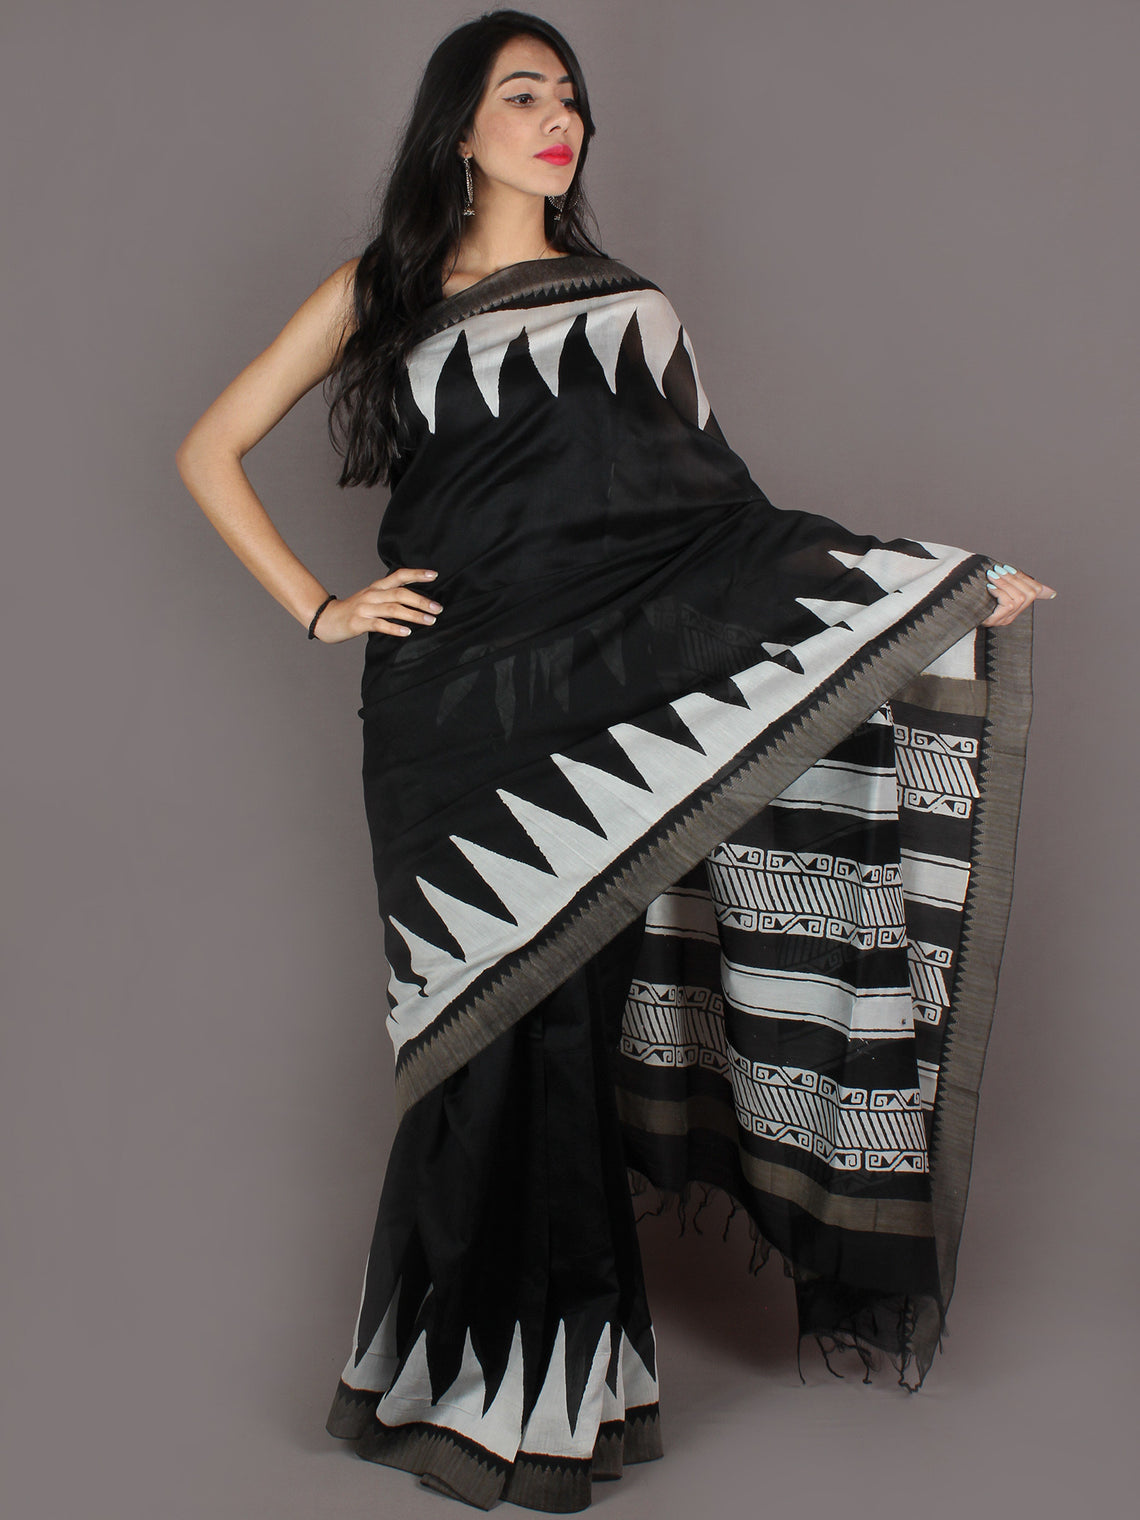 Black White Hand Block Printed in Natural Colors Chanderi Saree With Geecha Border - S03170971